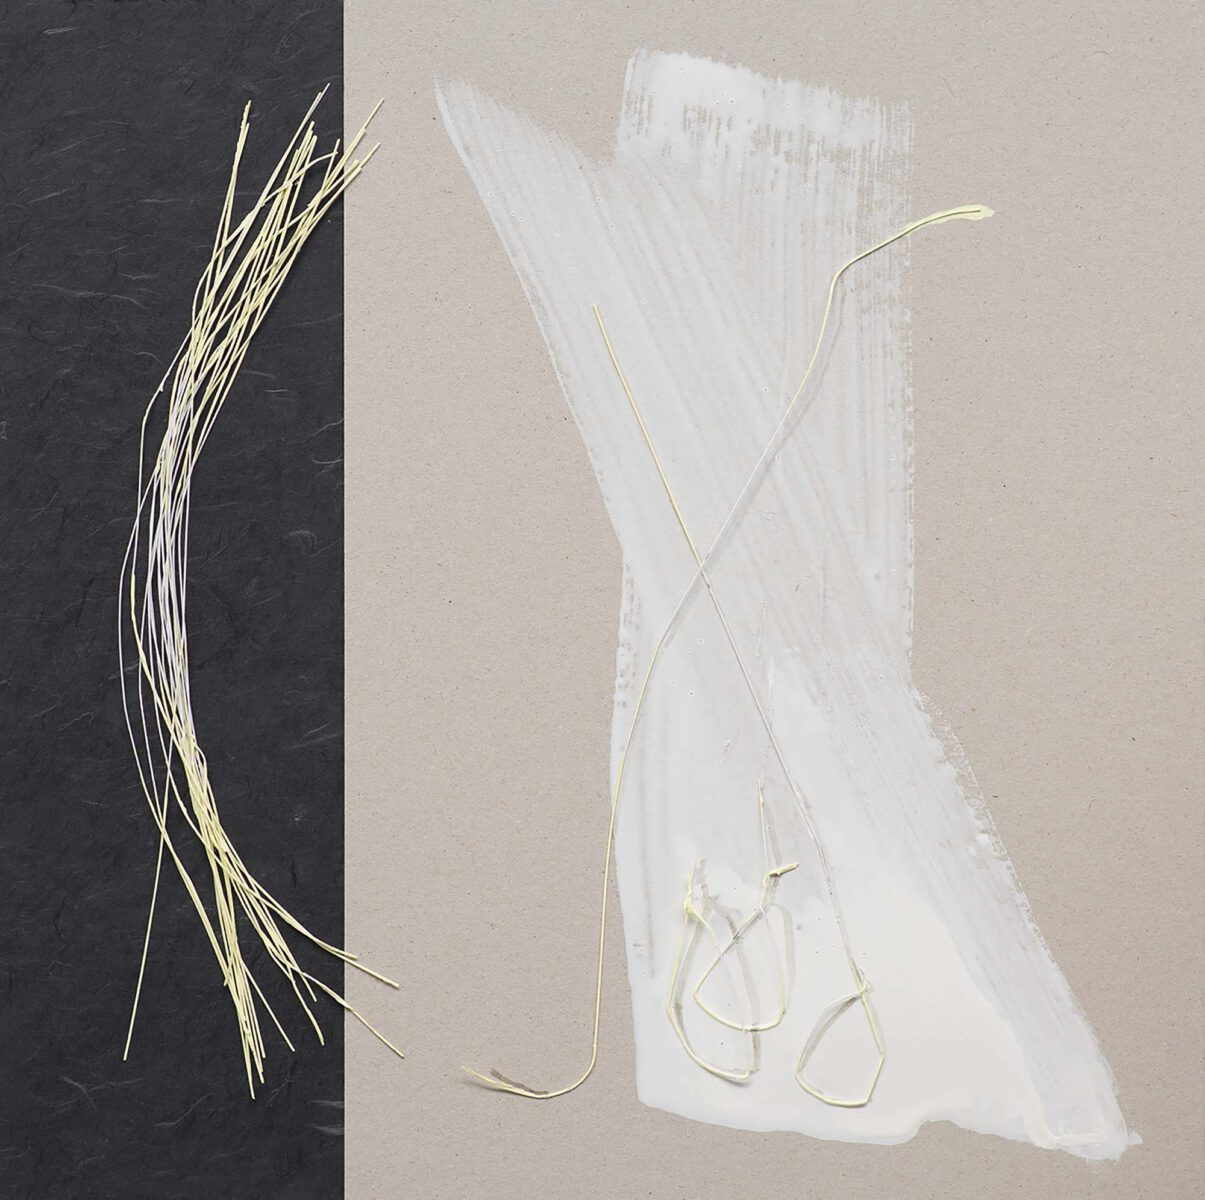 Nature, Nurture 1thread, house paint, paper, cardboard on MDF 46x46 cm